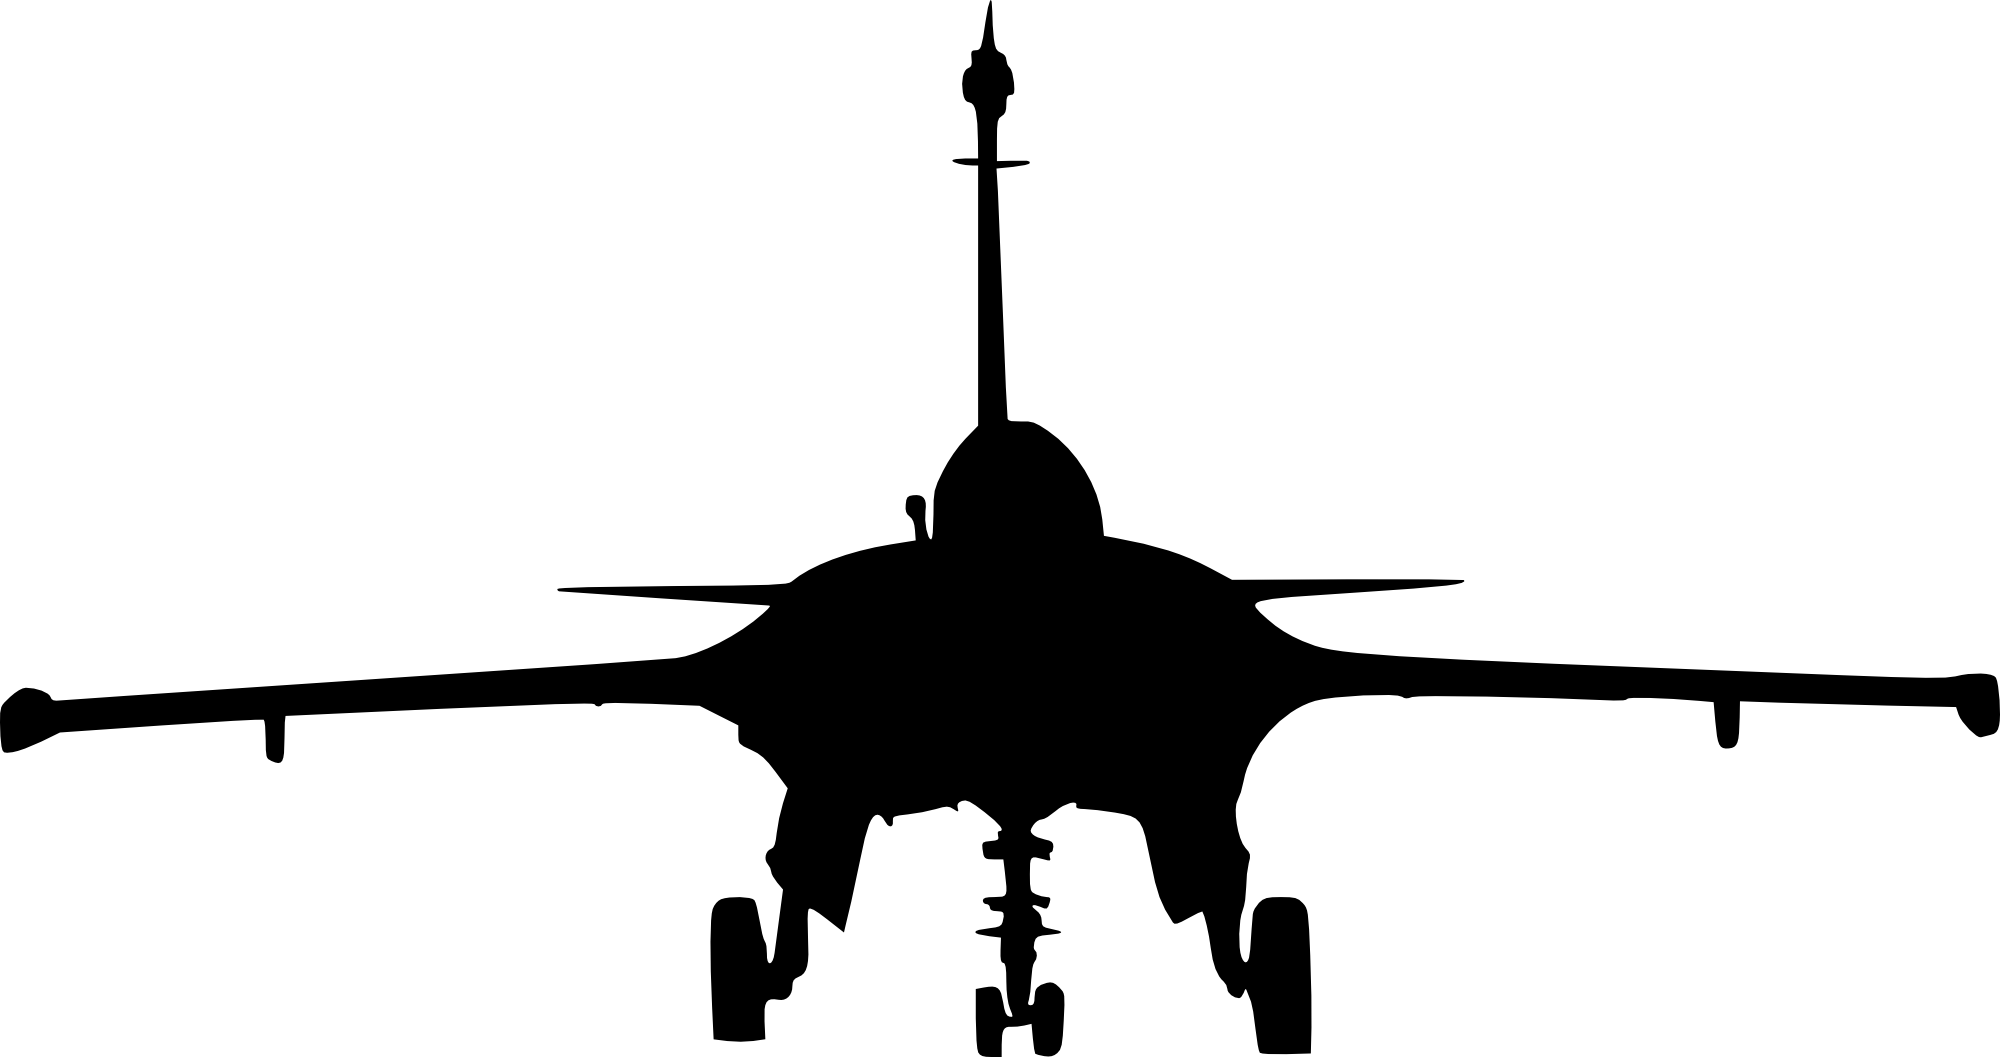 Fighter Jet Silhouette